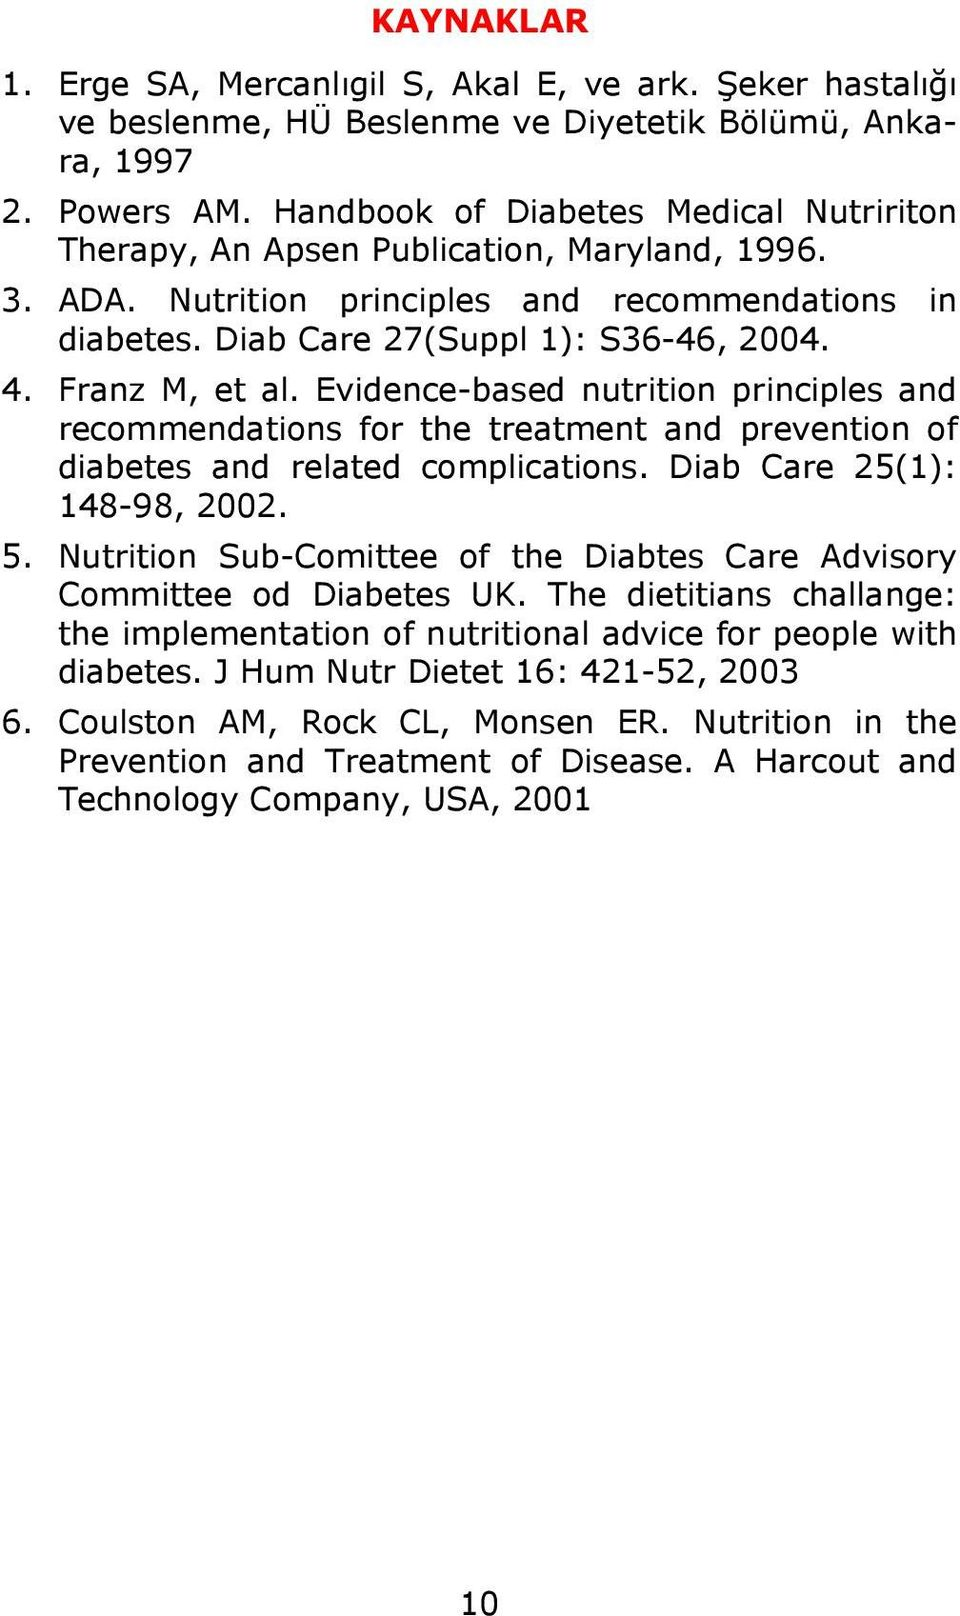 Franz M, et al. Evidence-based nutrition principles and recommendations for the treatment and prevention of diabetes and related complications. Diab Care 25(1): 148-98, 2002. 5.